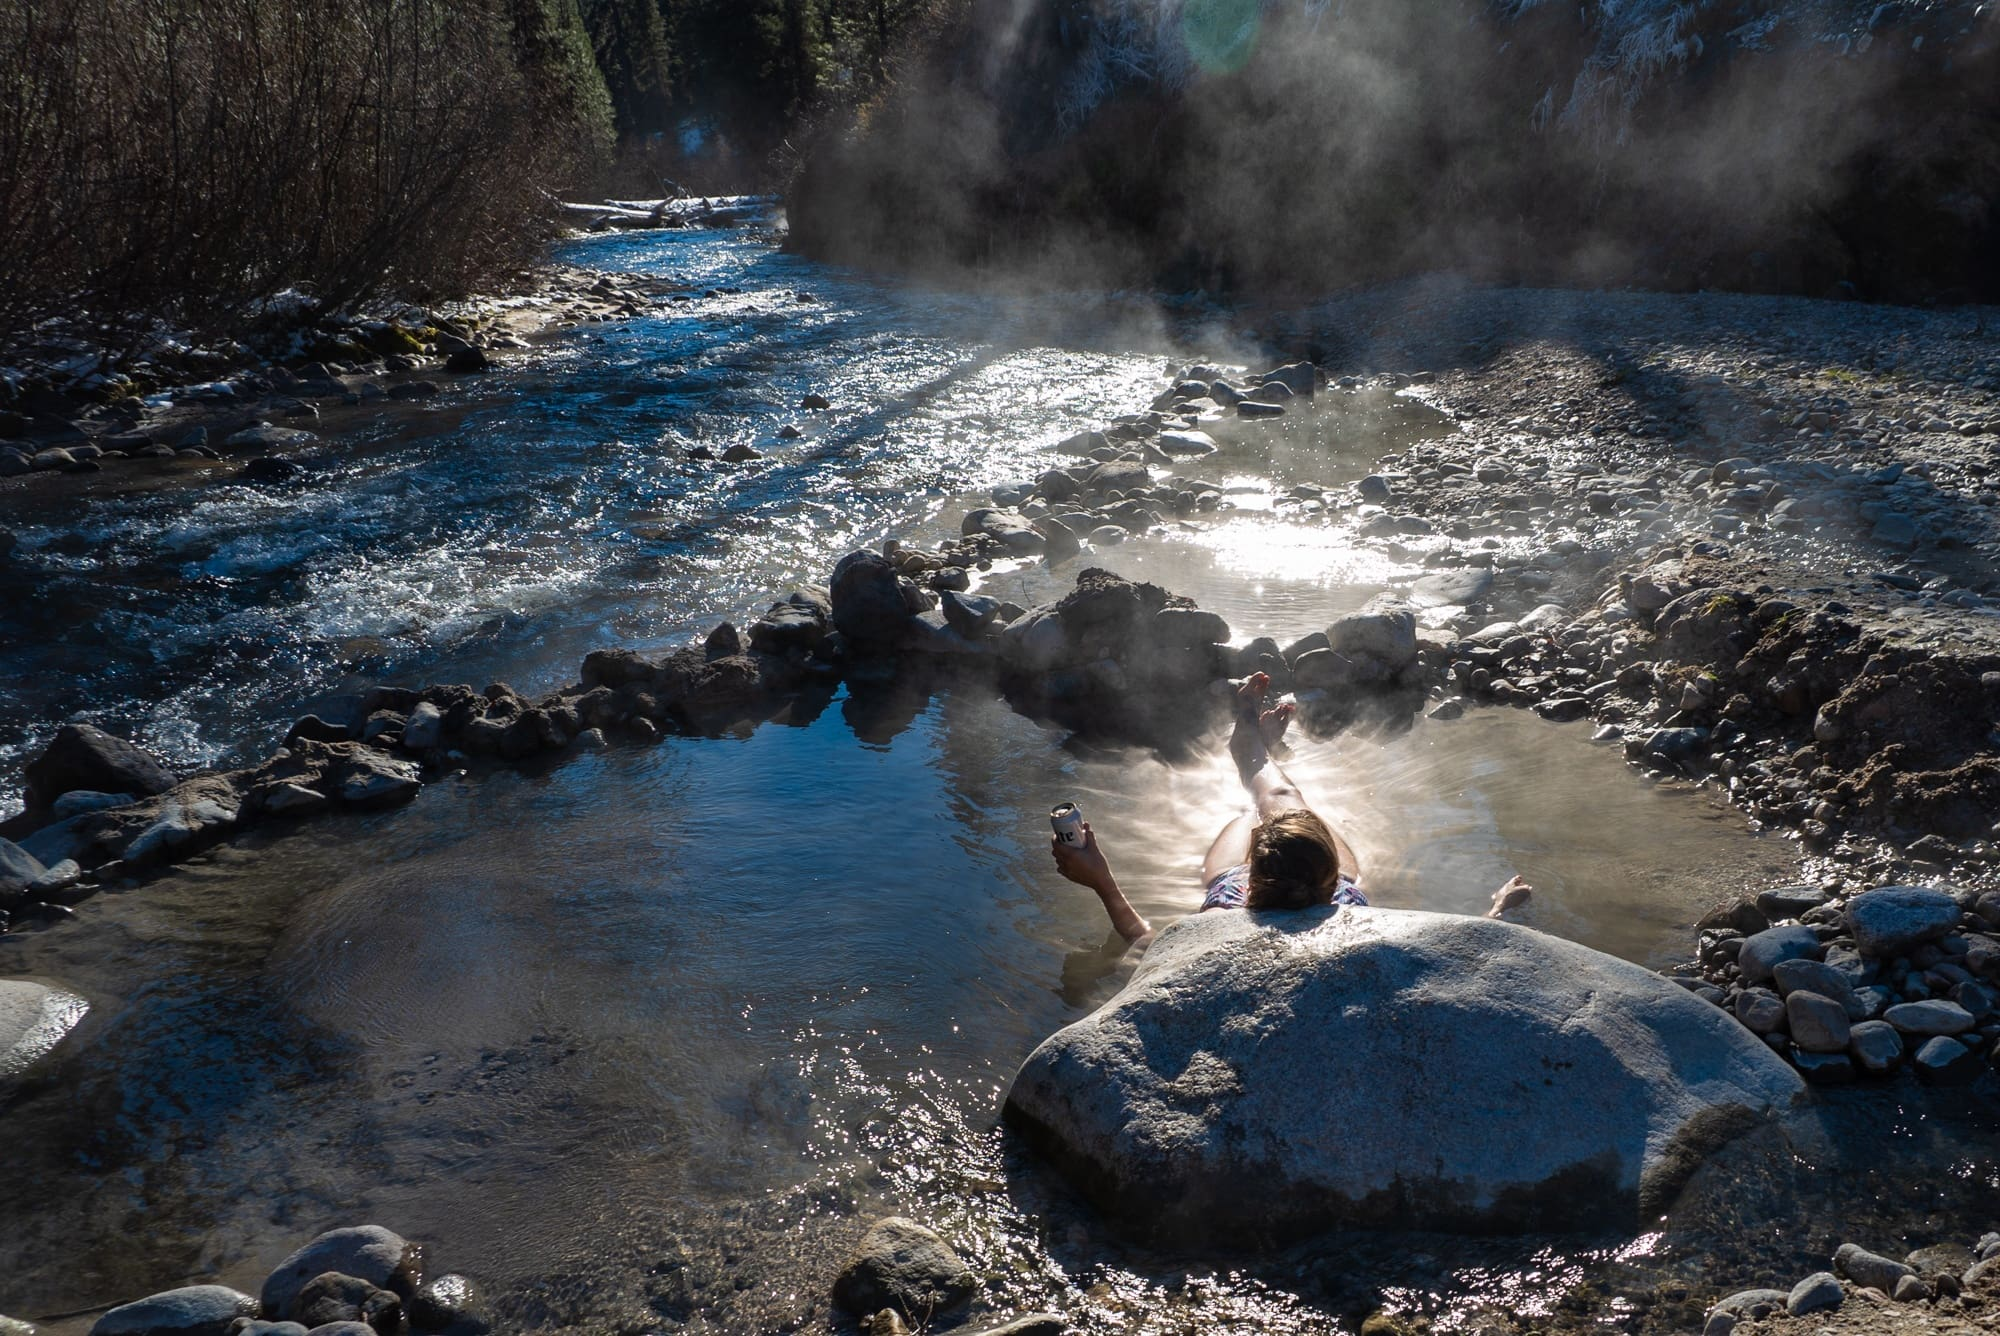 A Practical Guide to Hot Springs Etiquette